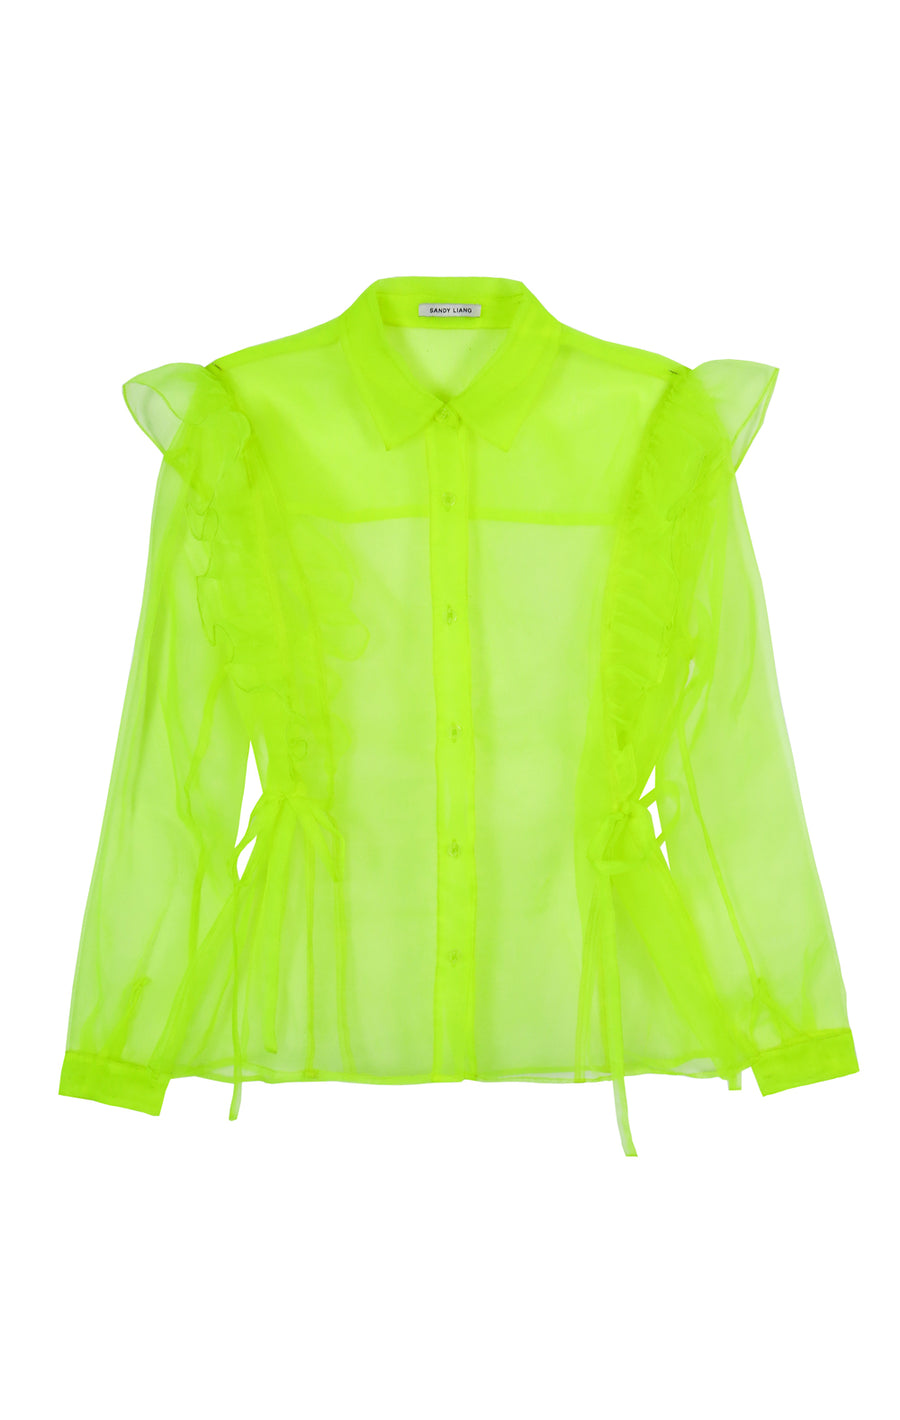 Grass Top in Highlighter Yellow